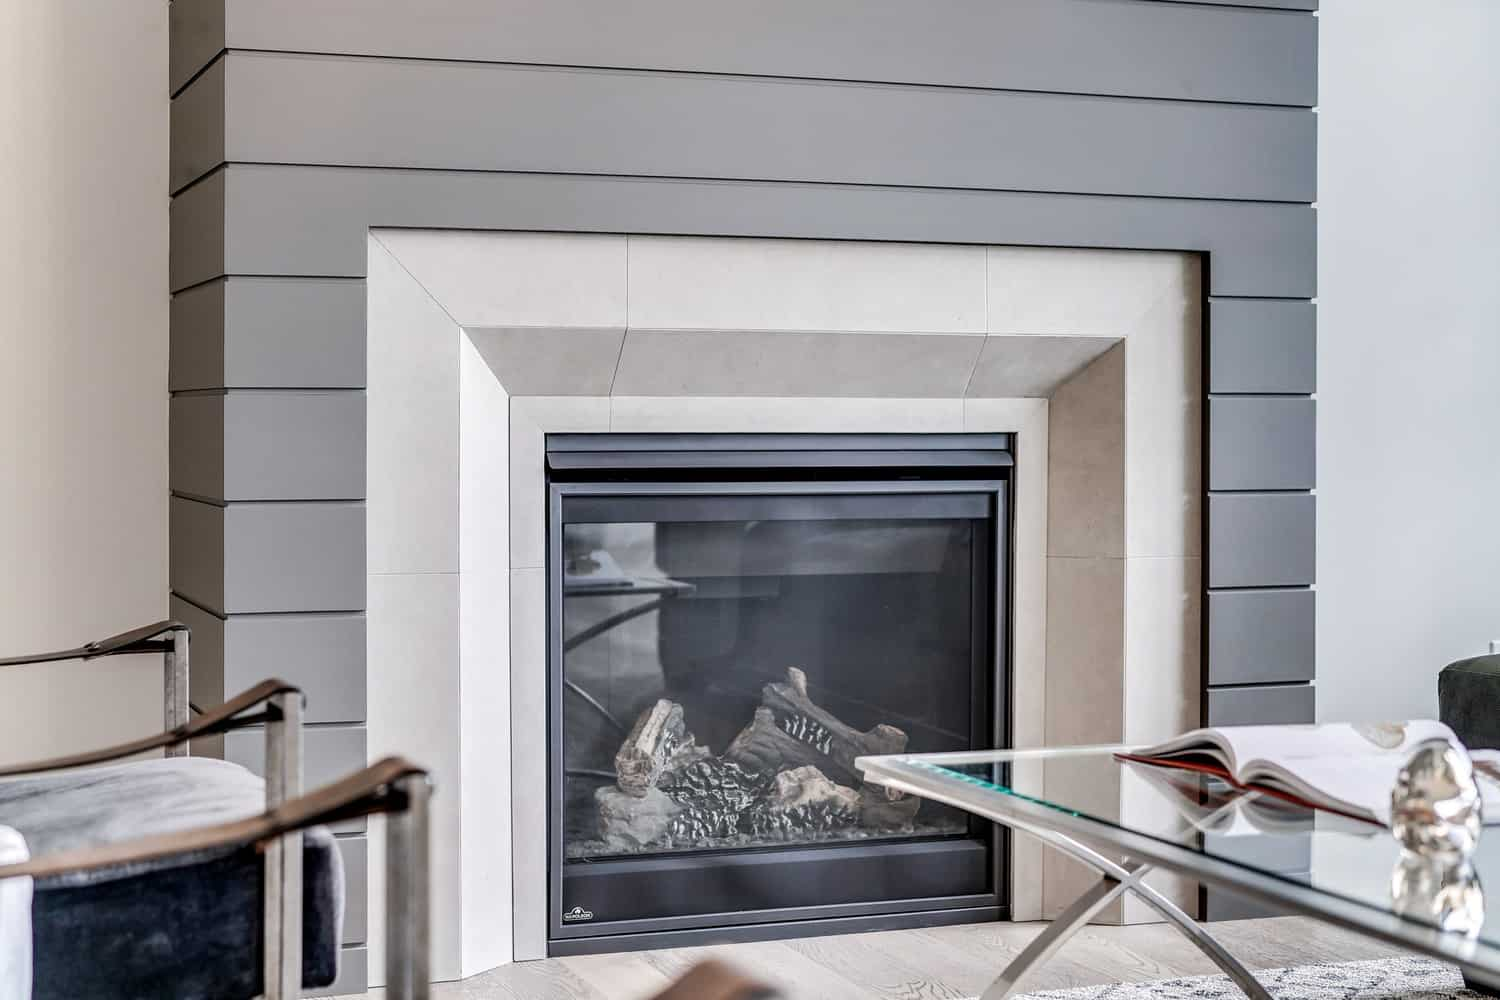 Watermark at Bearspaw fireplace architectural design